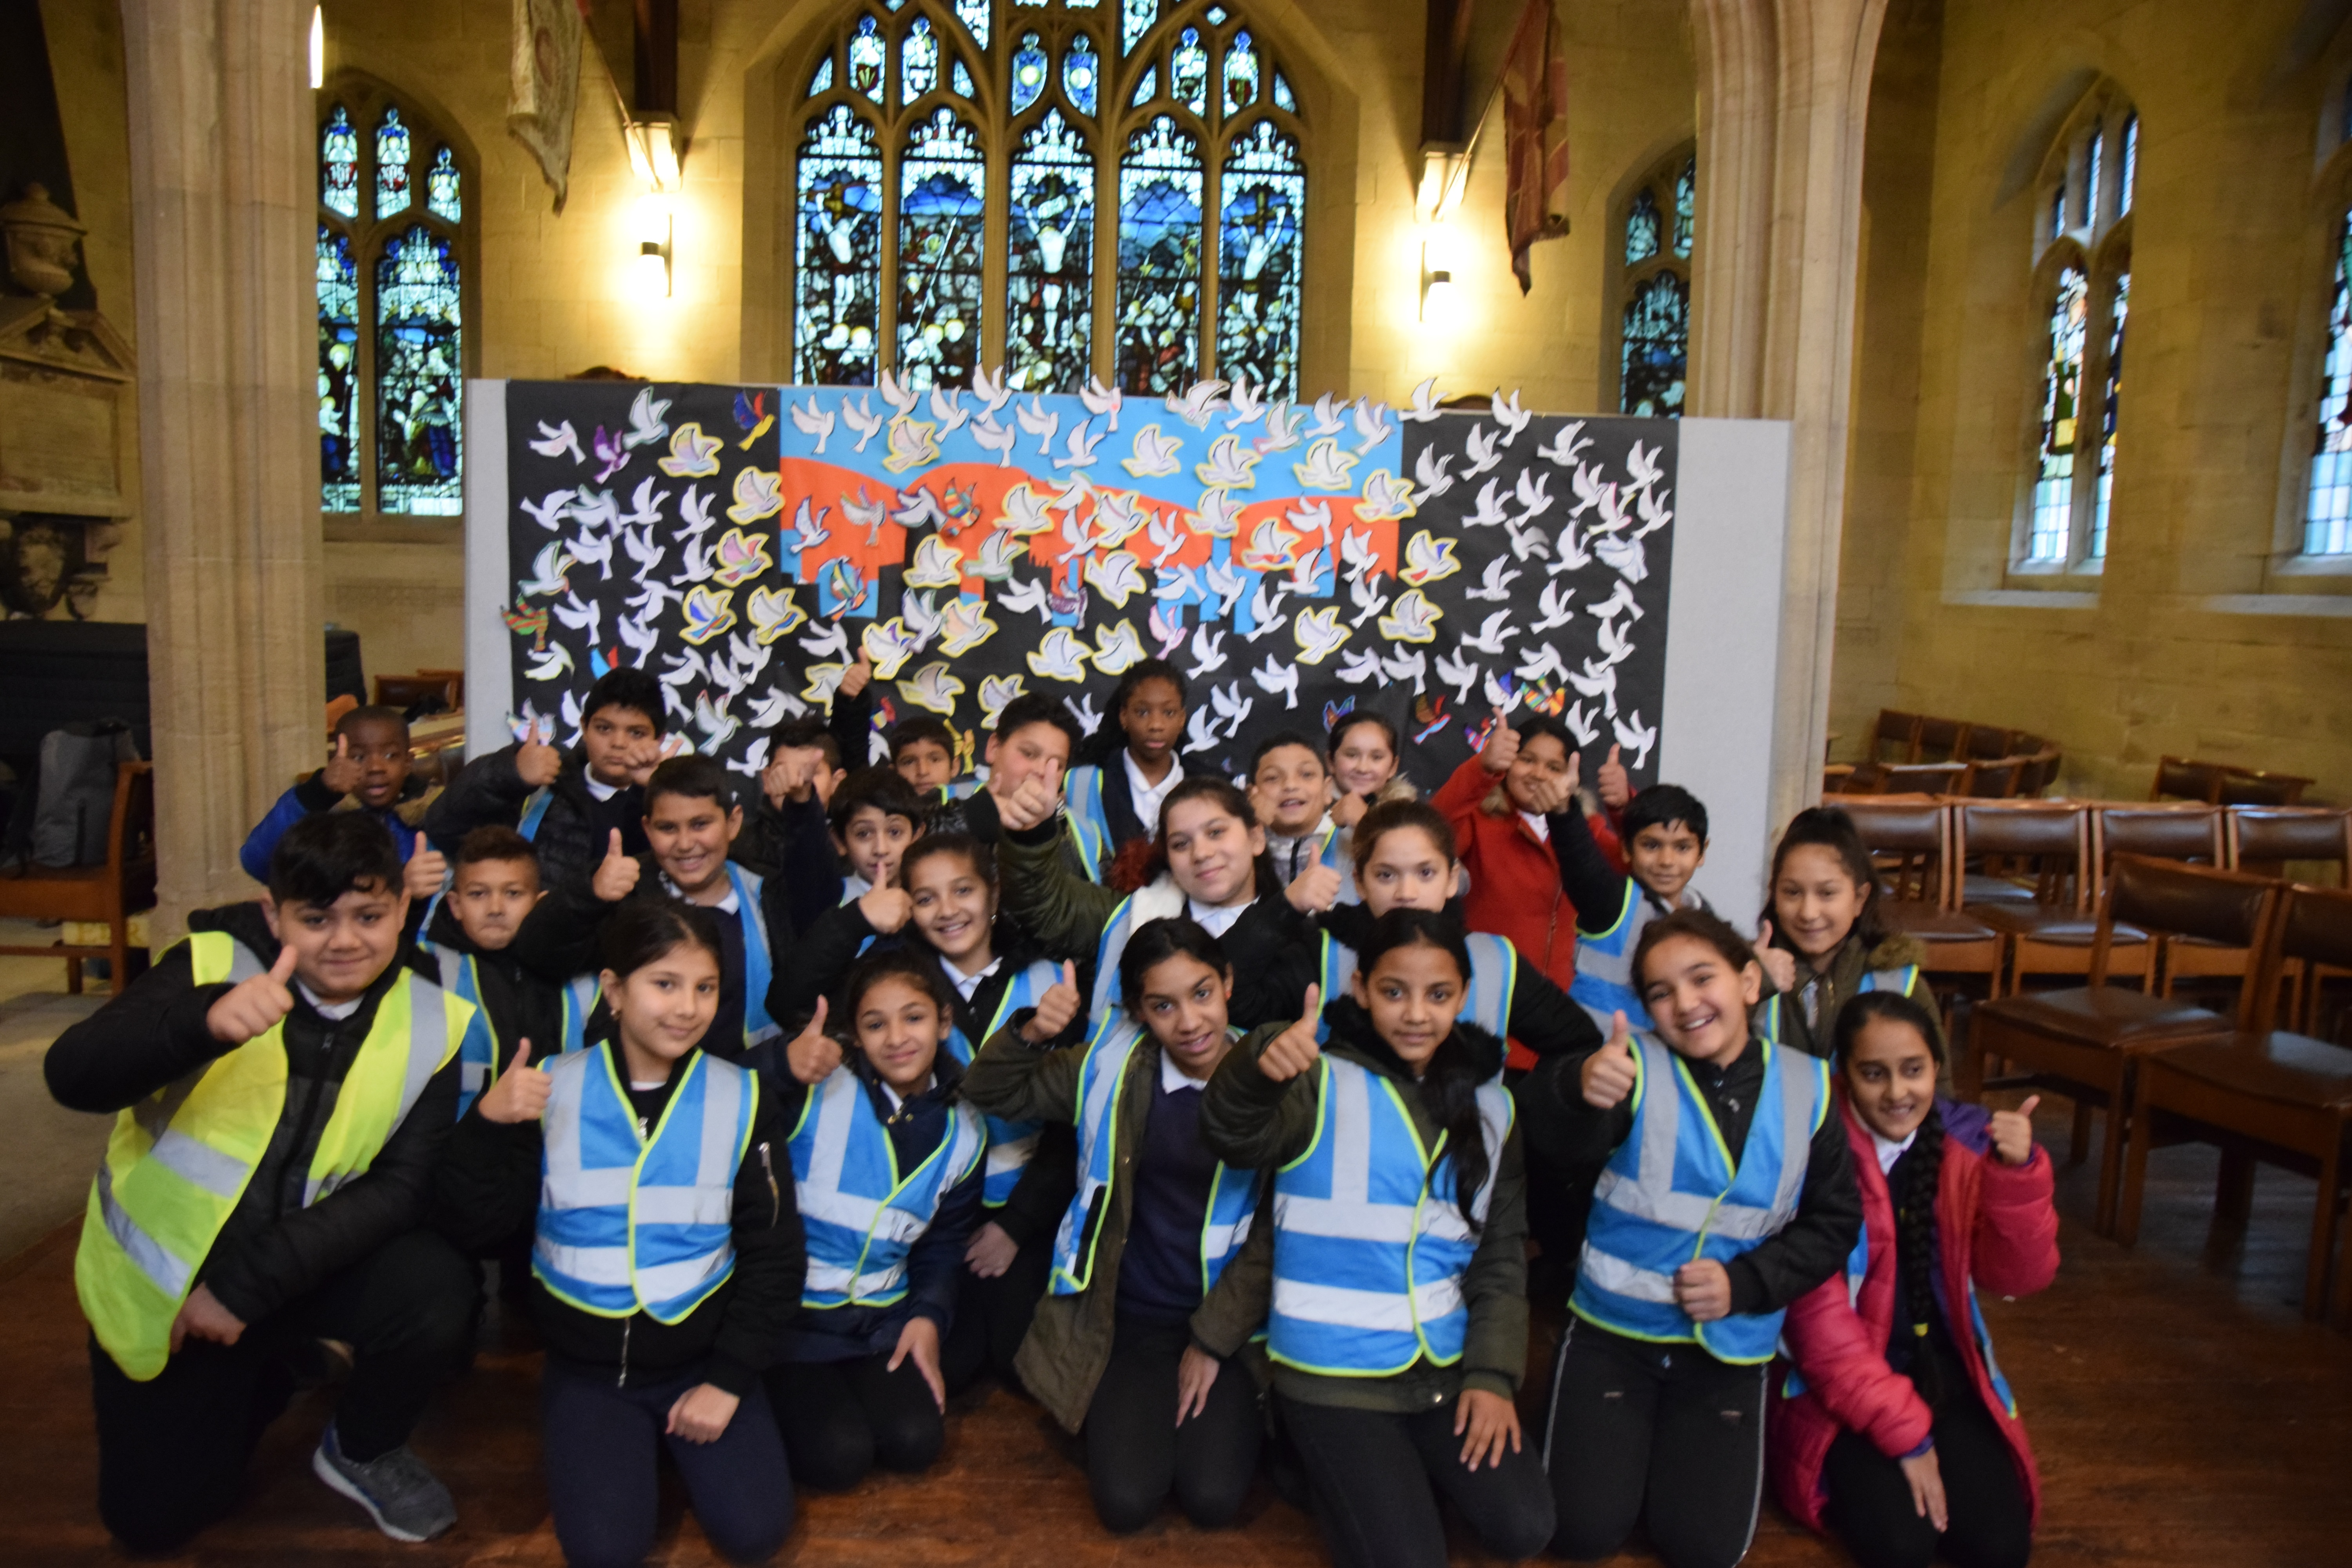 Sheffield school children gather to remember the fallen, and join a movement of change for peace